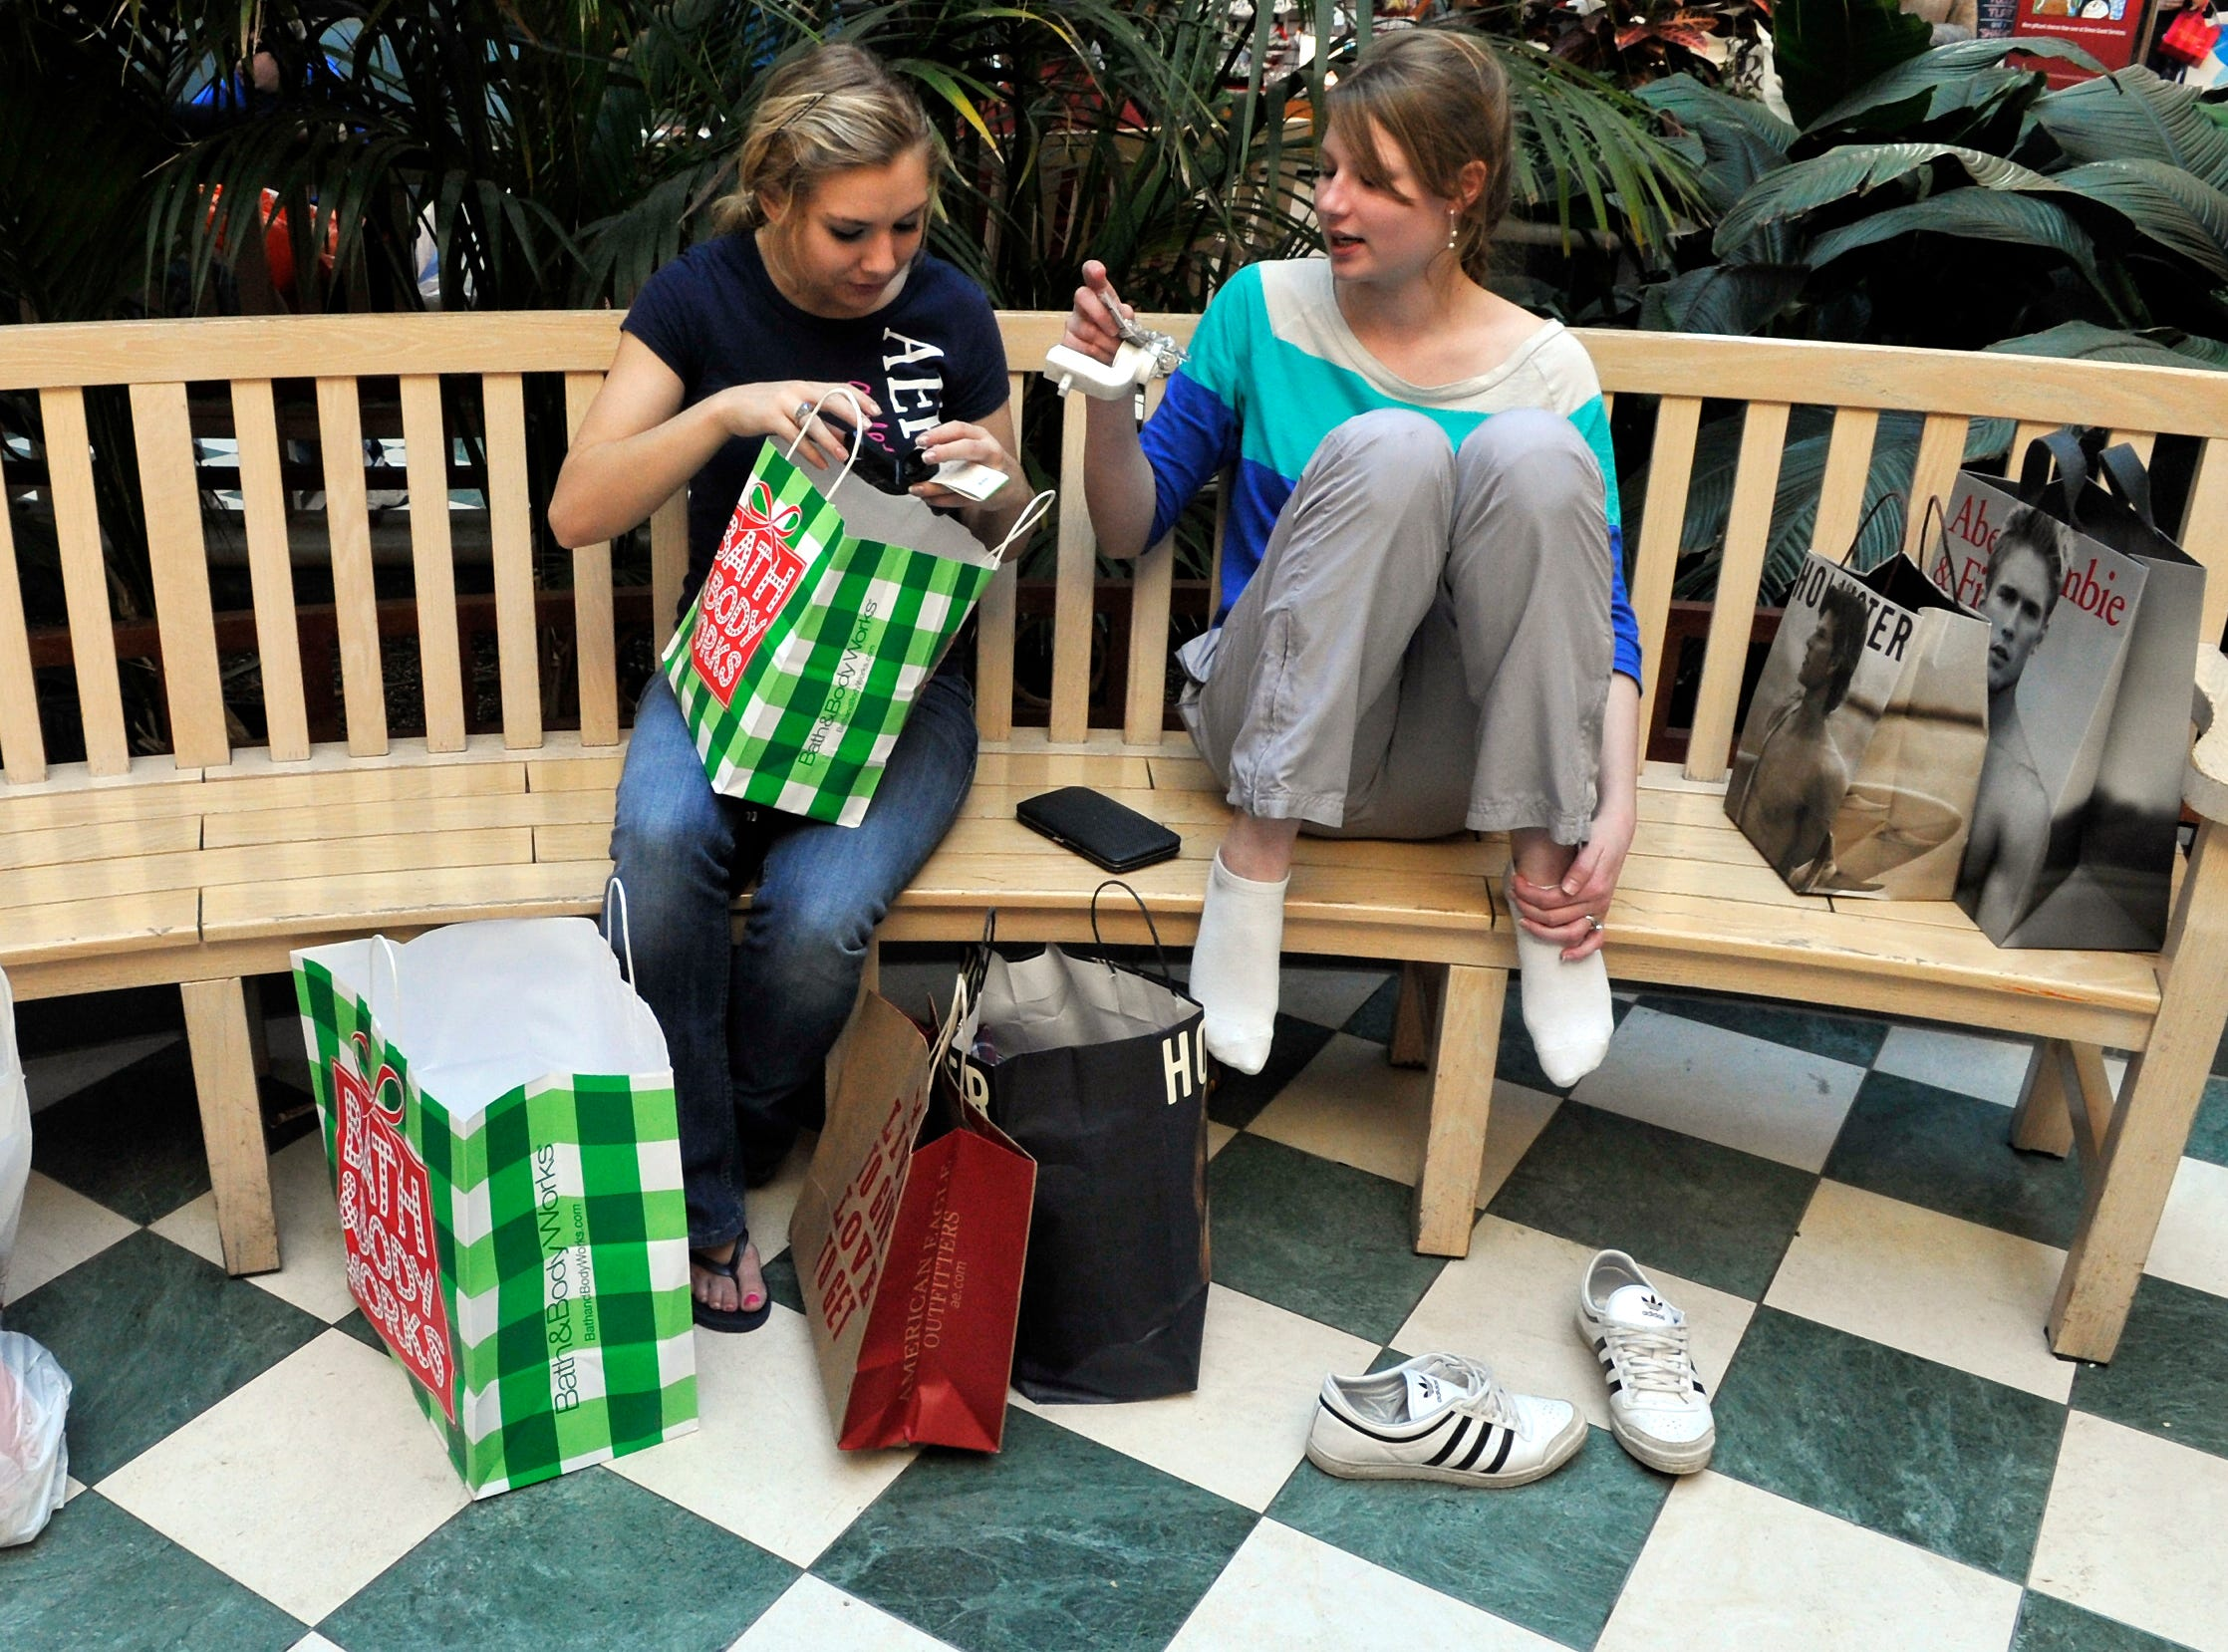 Gracie Clelland, 17, and her friend Ann Vogelsang a exchange student from Germany left Cosby in the early morning hours of Friday and arrived at West Town Mall at 2:30 am to start their Christmas shopping.